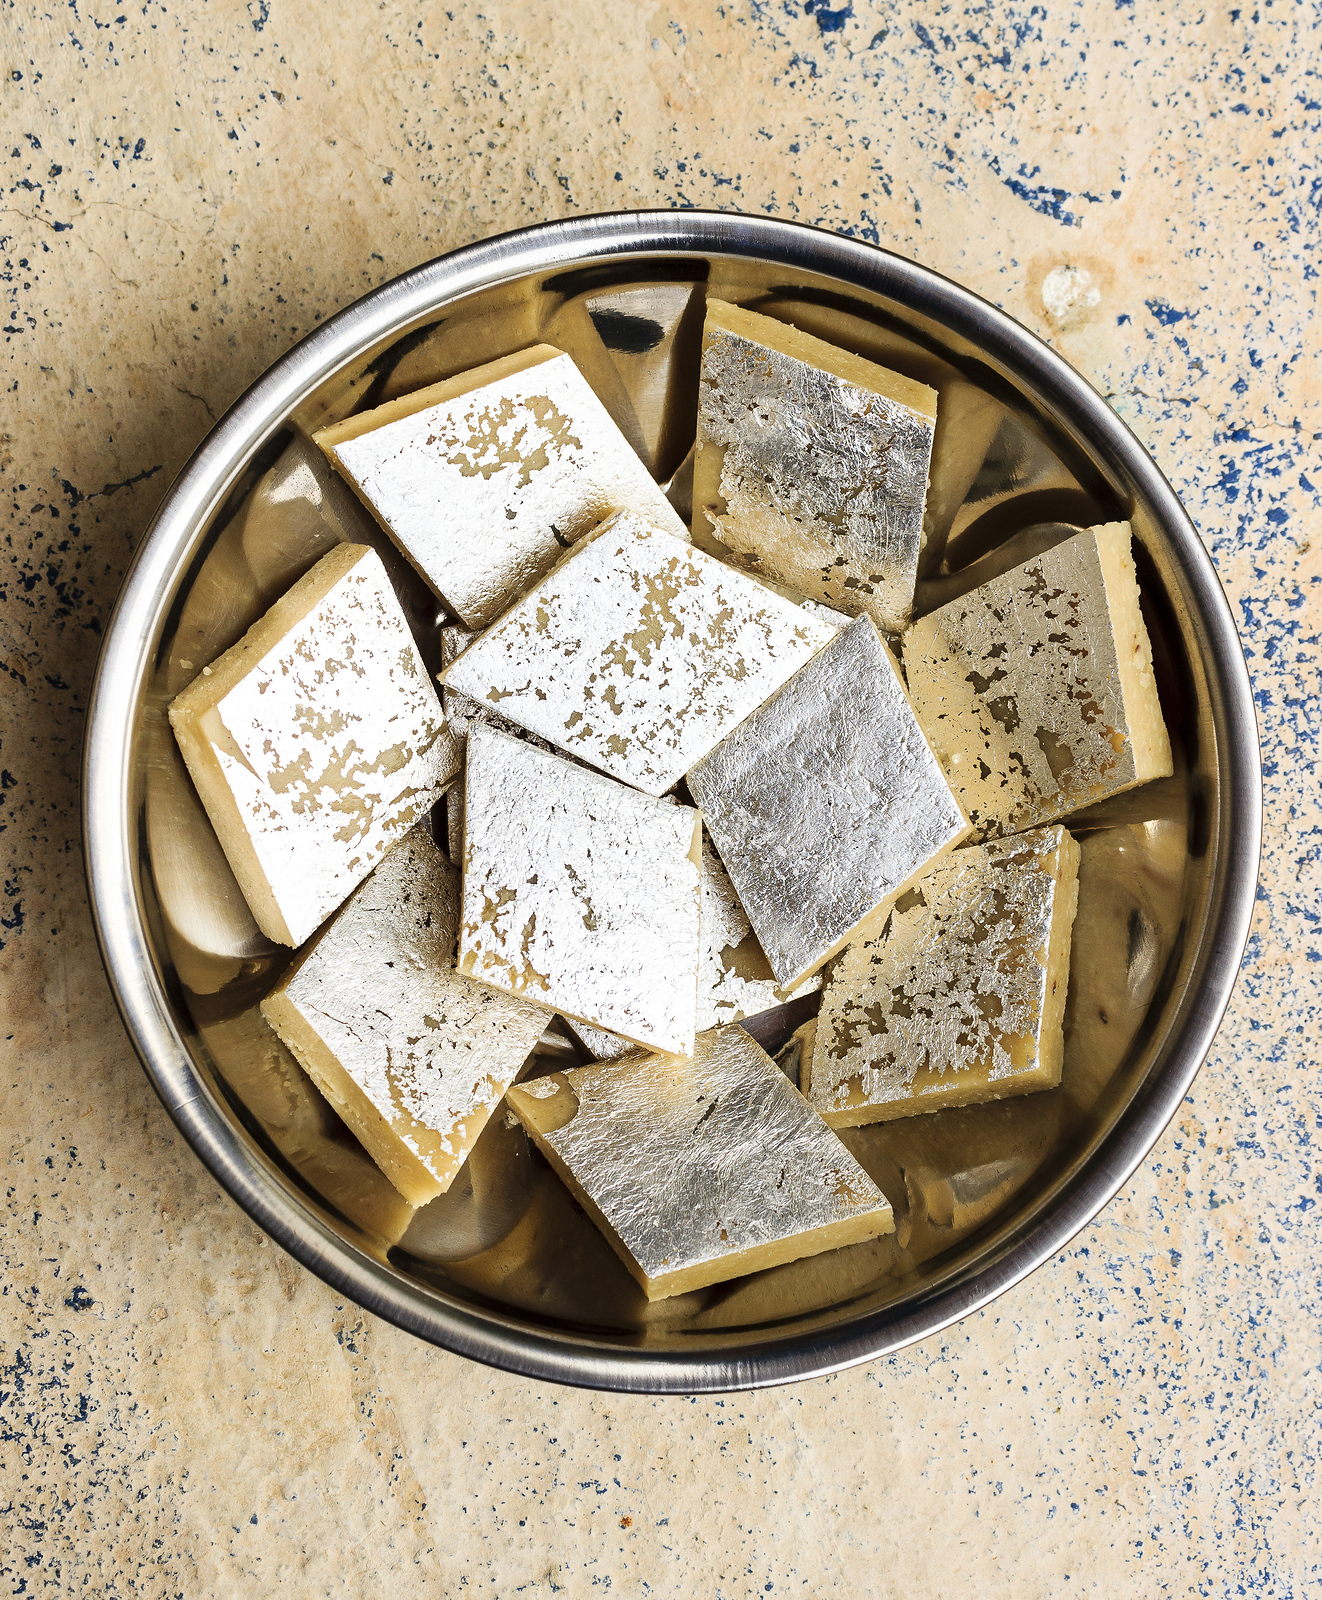 Kaju Katli are diamond shaped cashew sweets from India and one of the Diwali festival foods you must try. Discover the other 22 foods.